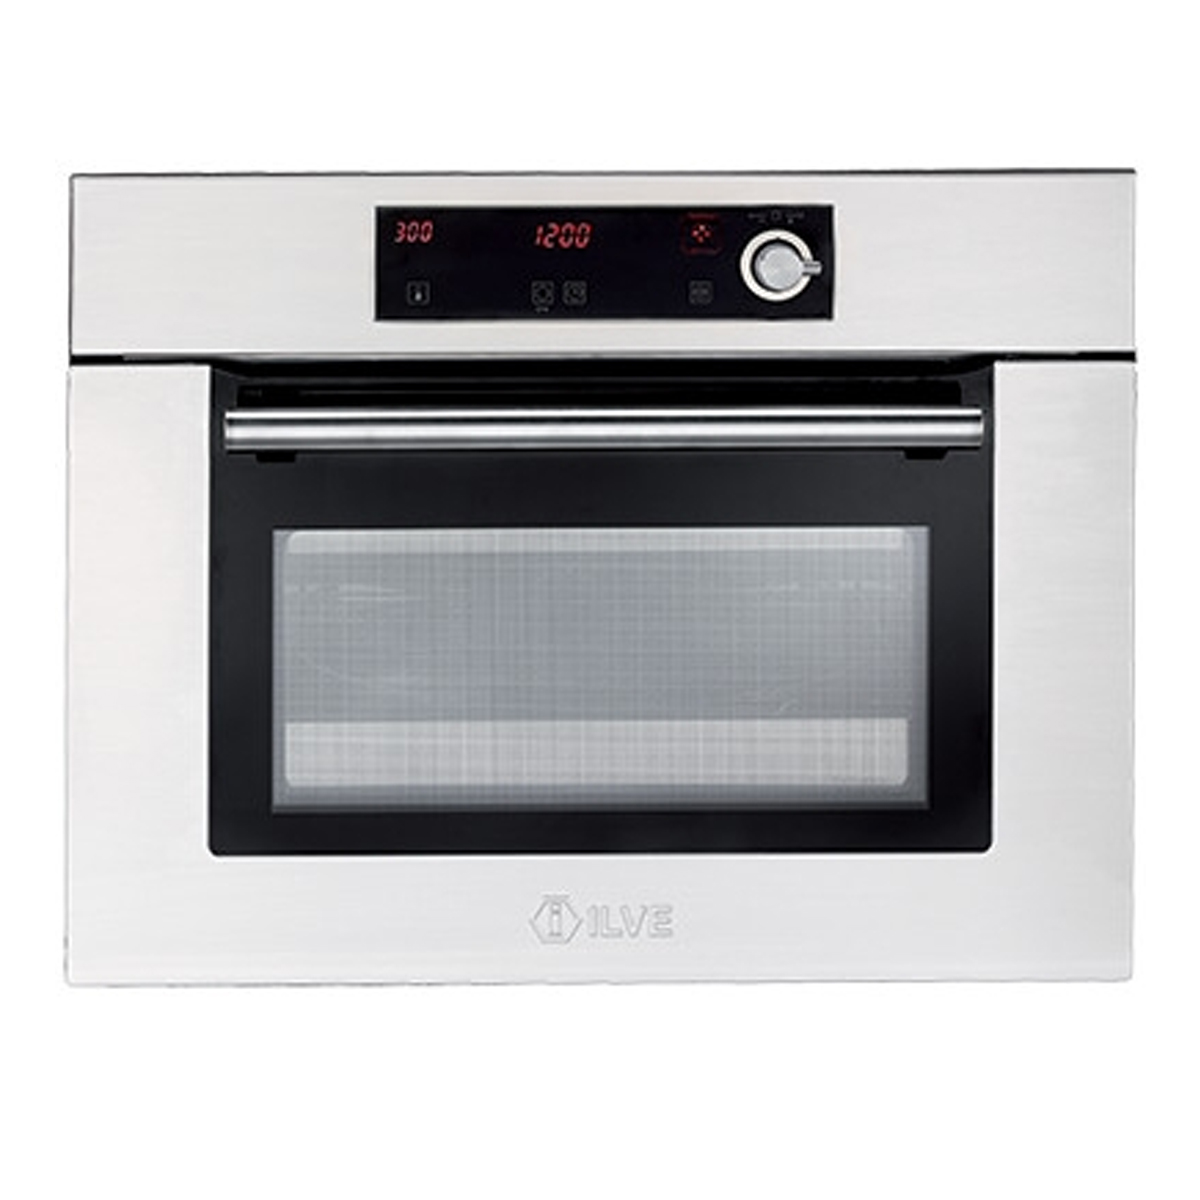 Ilve 645SLE3 60cm Stainless Steel Compact Oven